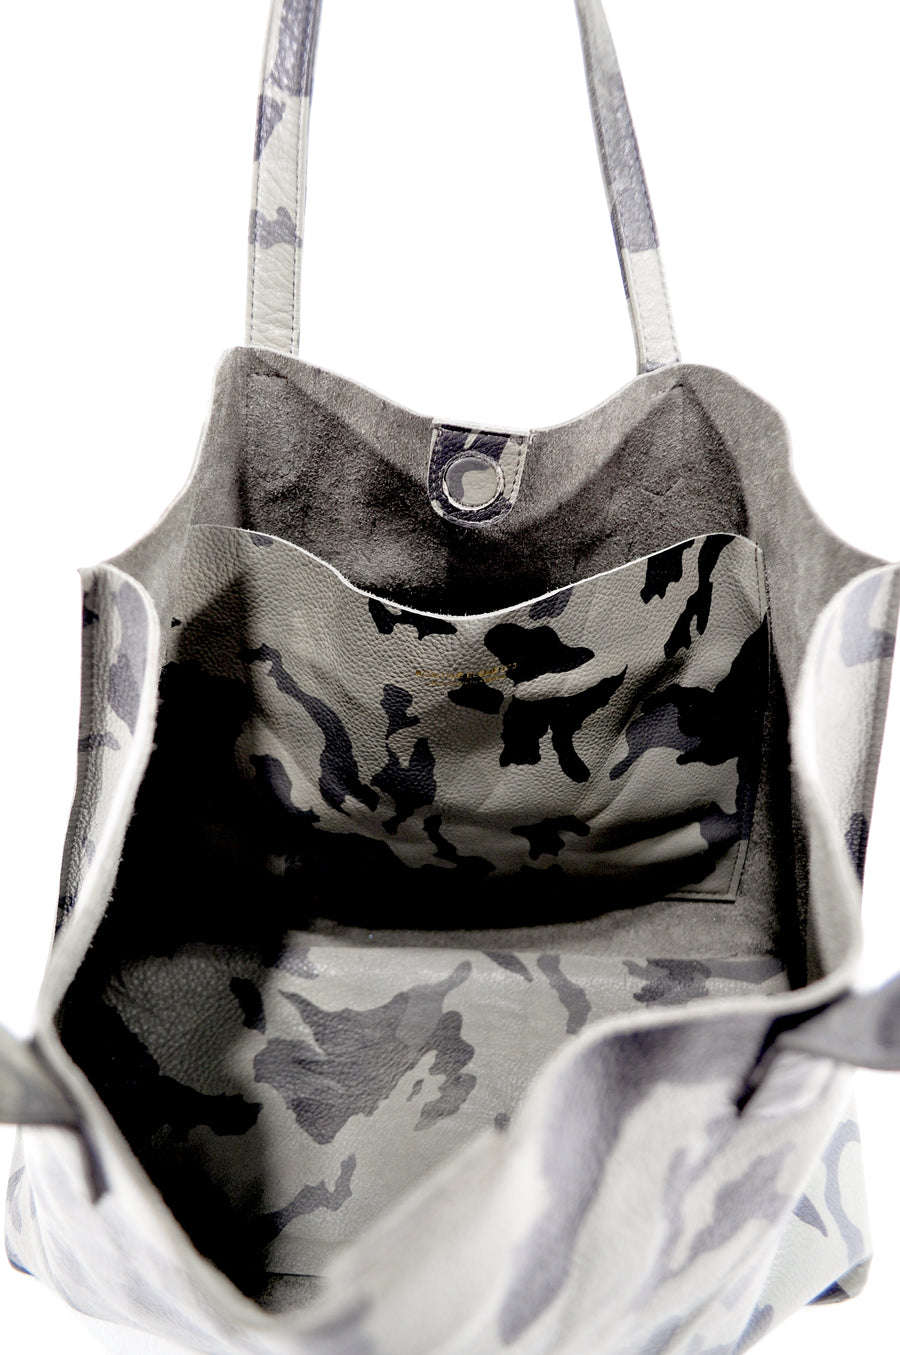 Edge Tote in Gray Camo Leather - Positive Elements